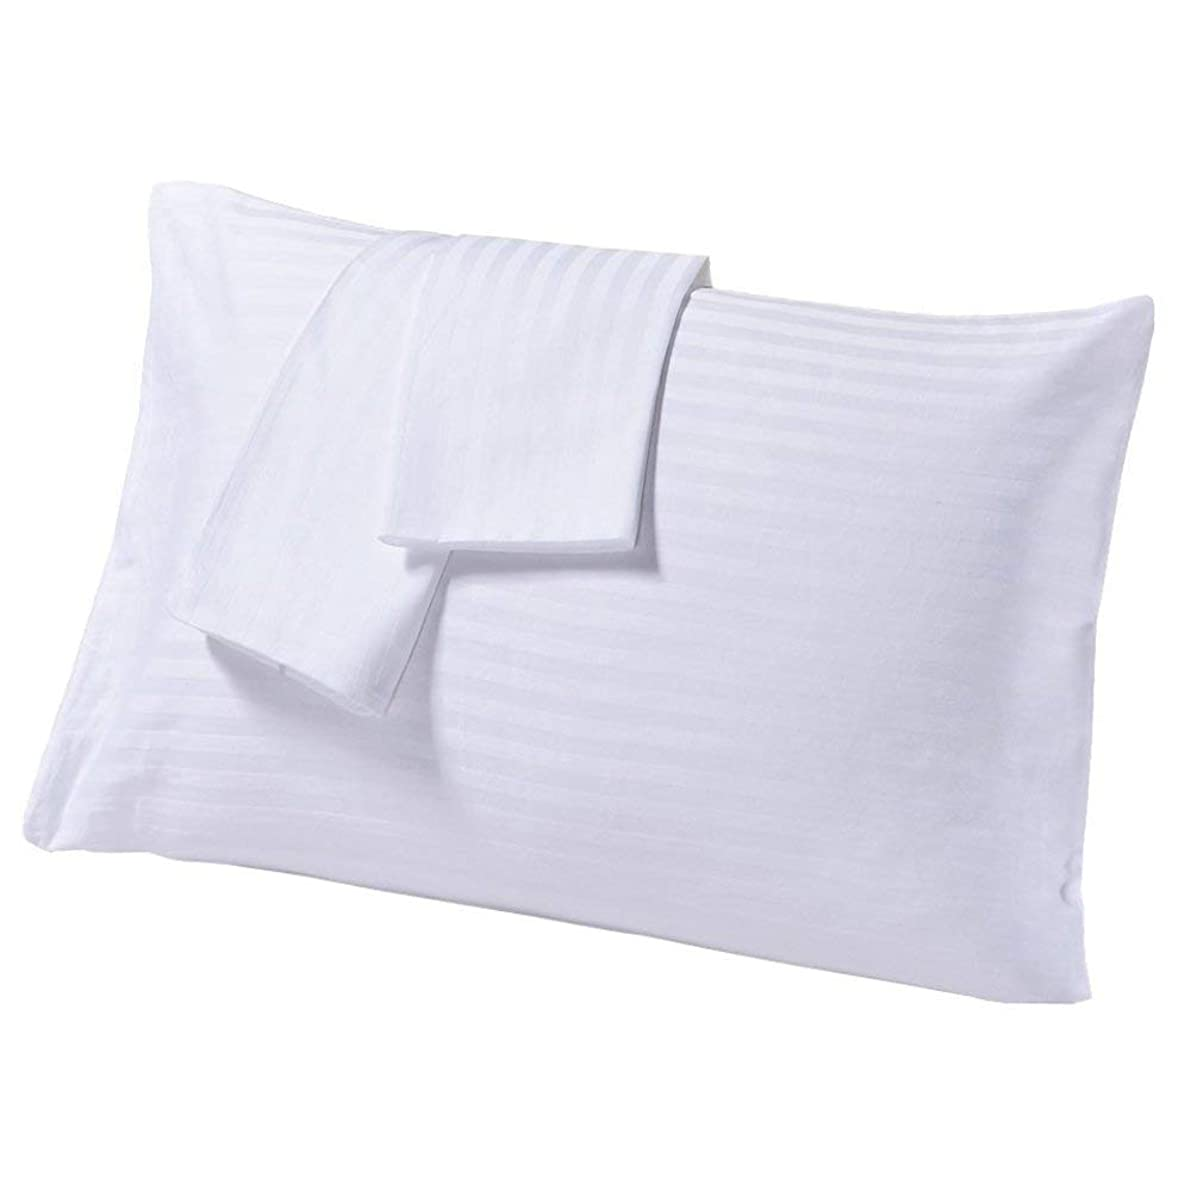 Egyptian Cotton Set of 2 Travel Pillow Cases 14X20 White Striped 500 Thread Count Zipper Closer With 100% Egyptian Cotton